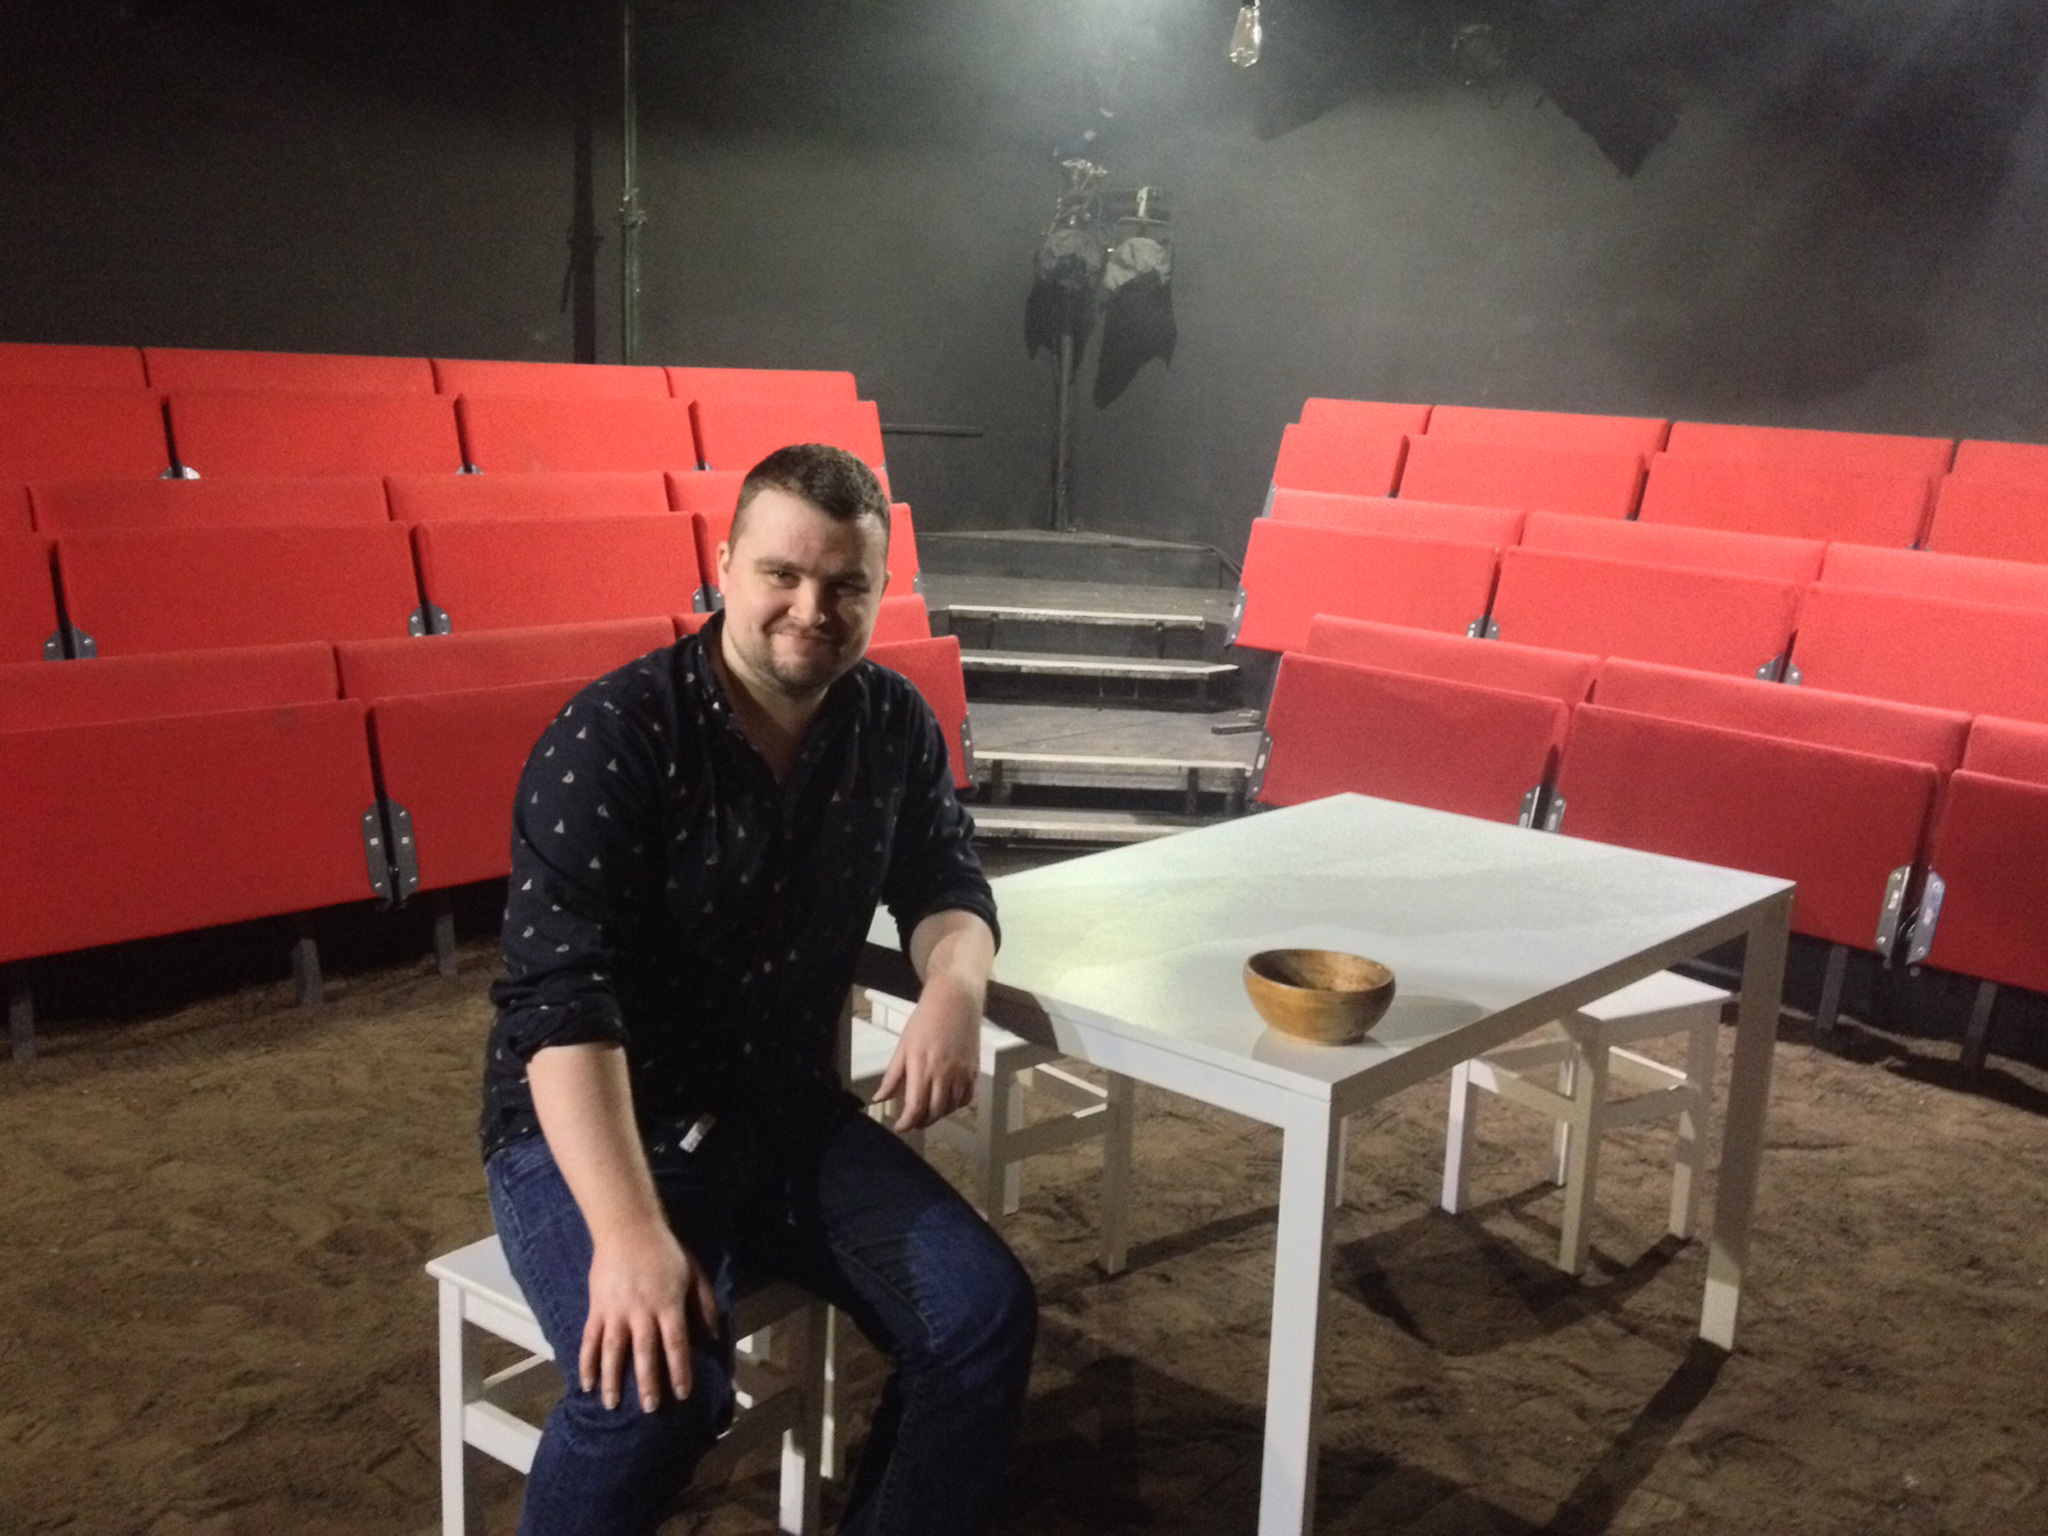 Phil Meikle on Trafalgar Studios 2 for Time Out reader takeover